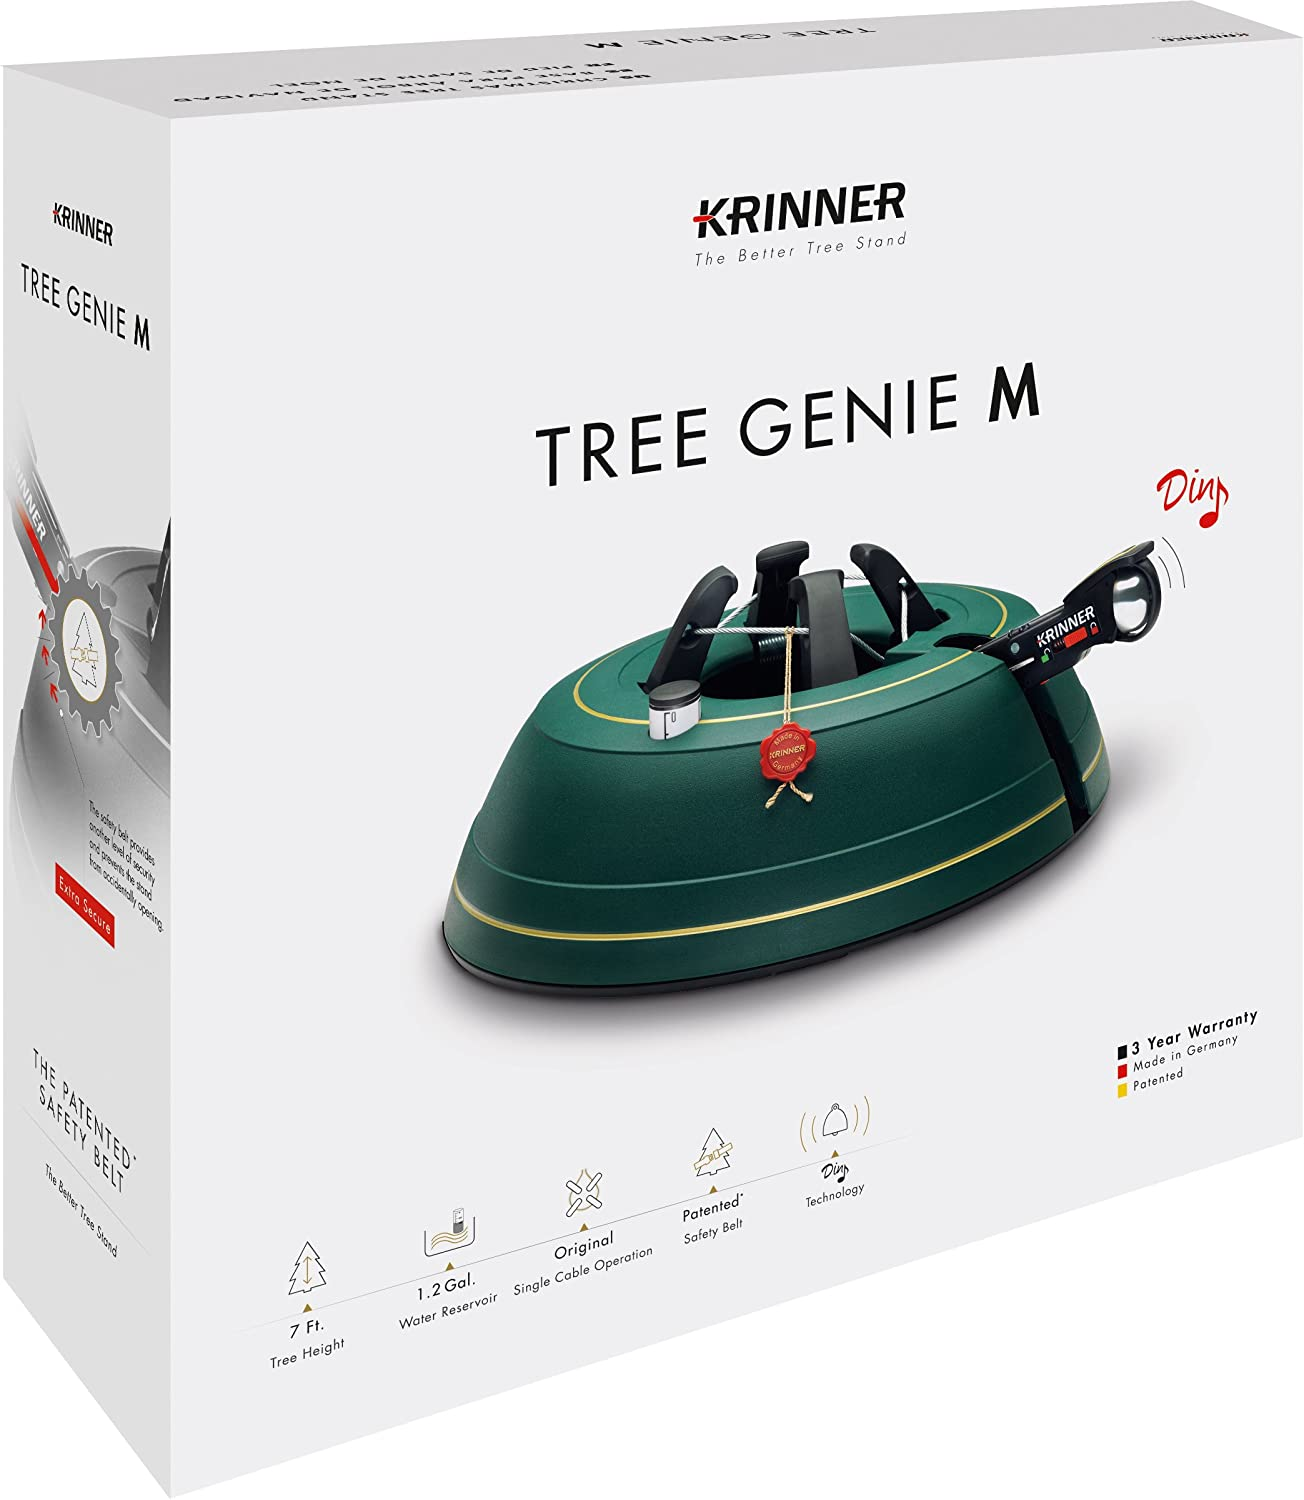 Amazon.com: Krinner Tree Genie M, Christmas Tree Stand with Foot ...